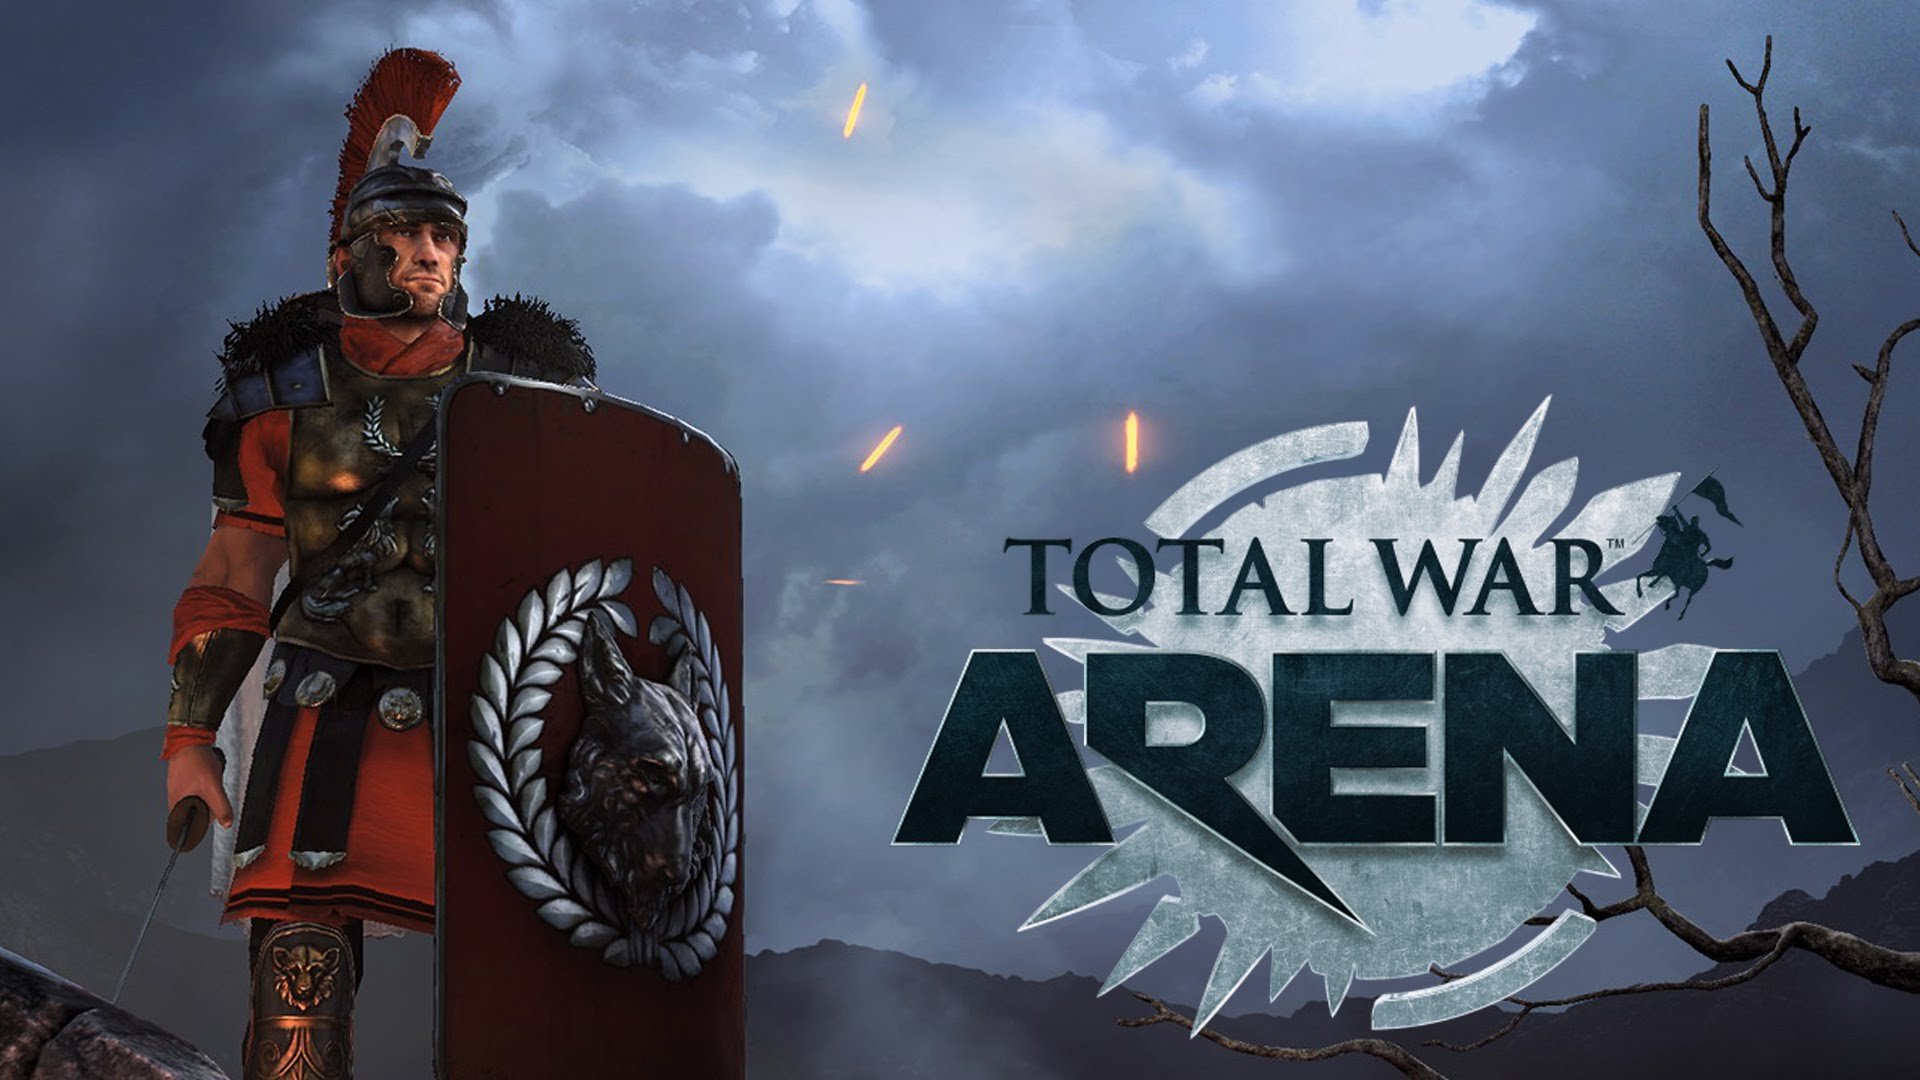 Offene Woche in Total War: ARENA